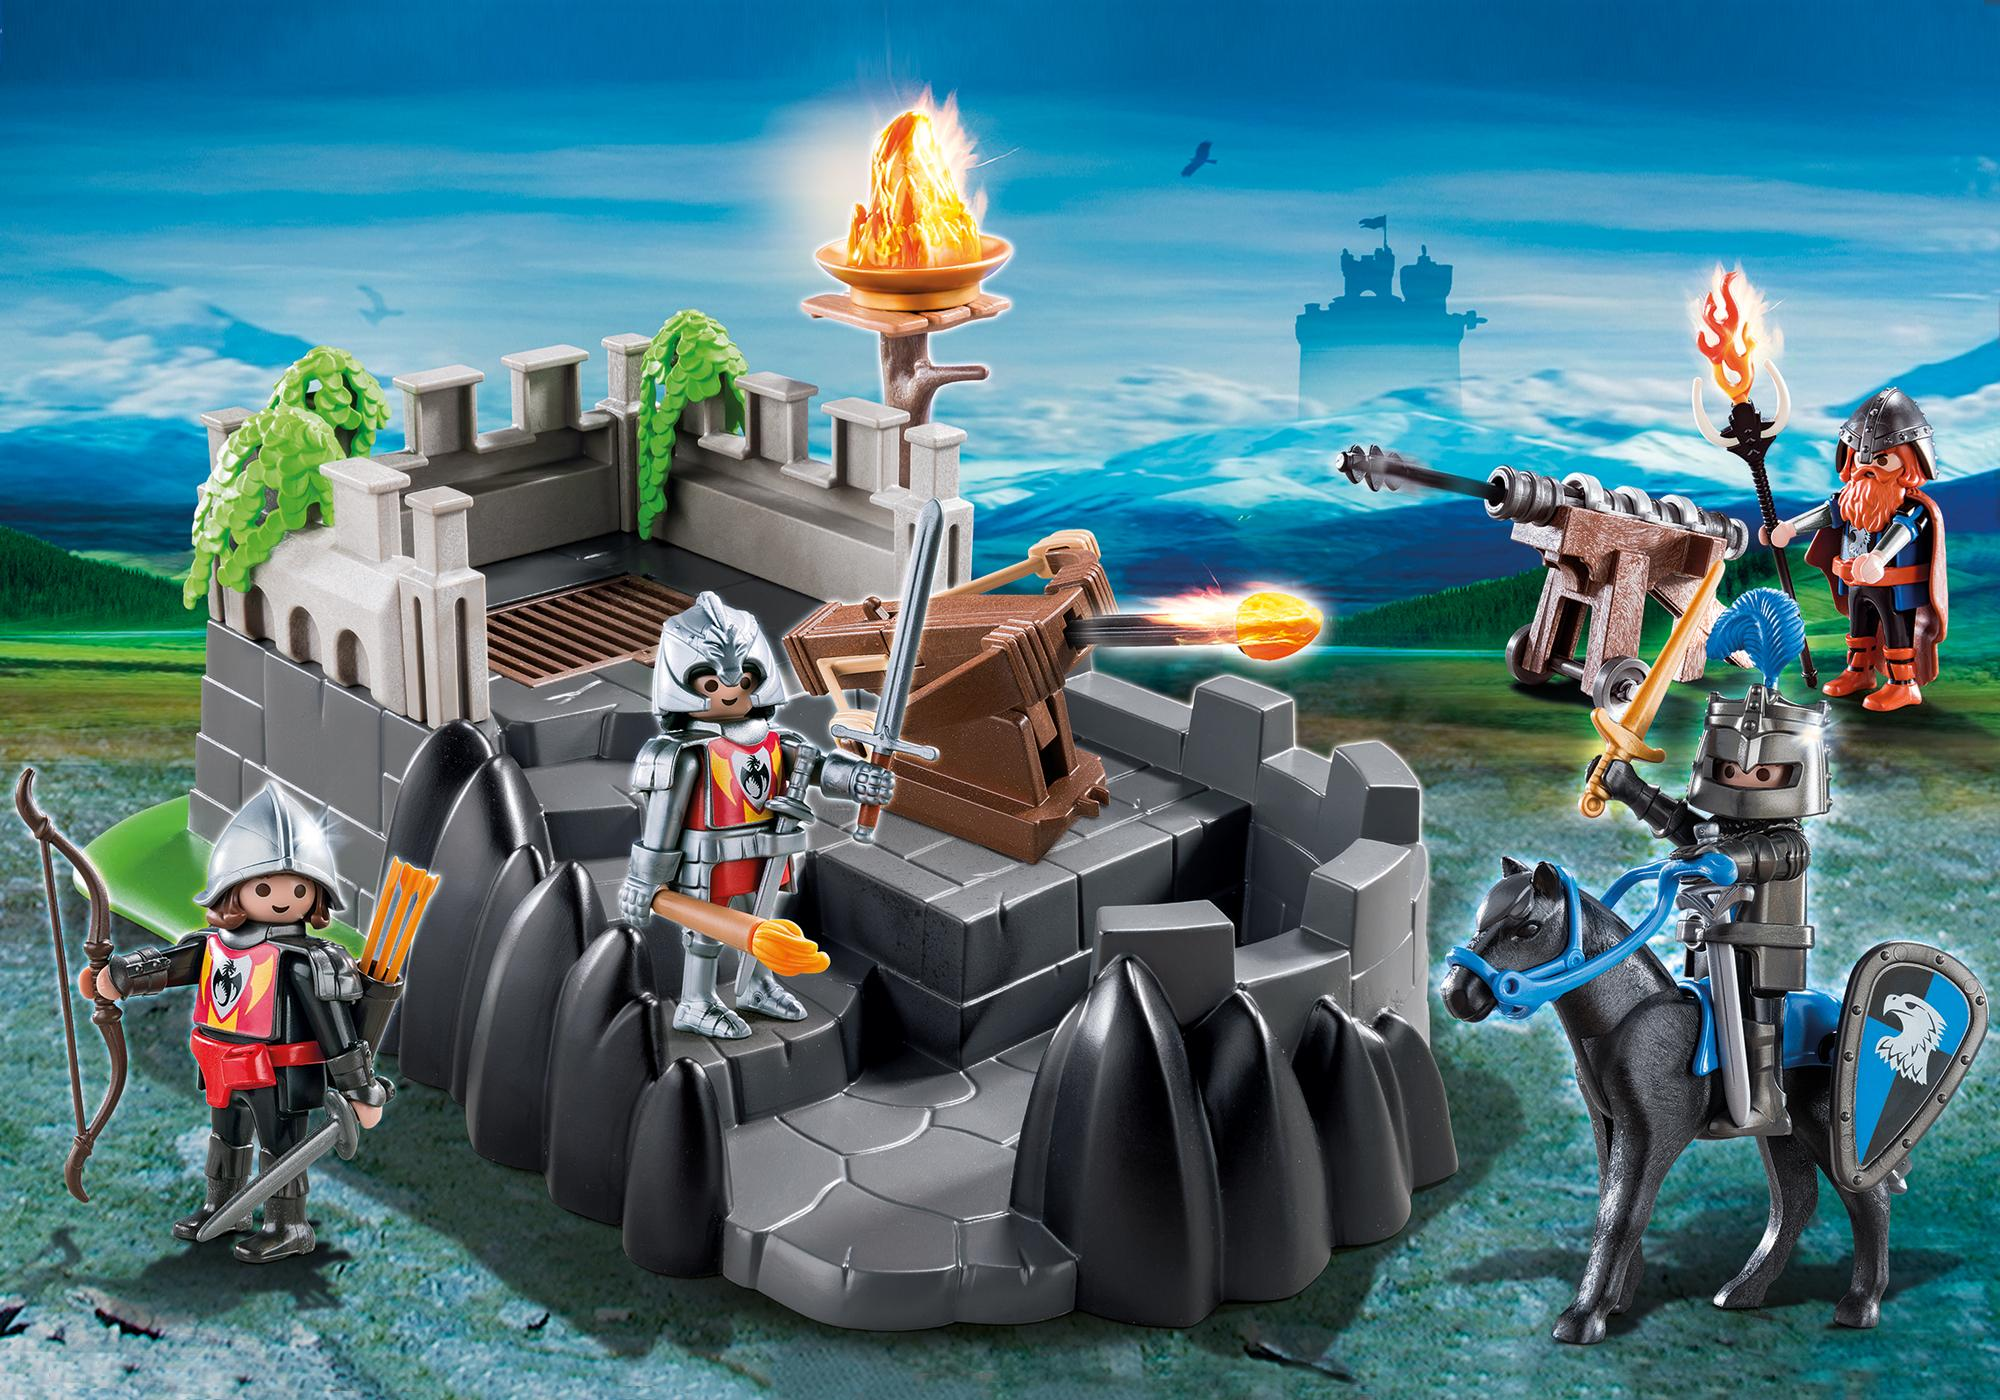 http://media.playmobil.com/i/playmobil/6627_product_detail/Dragon Knights' Fort